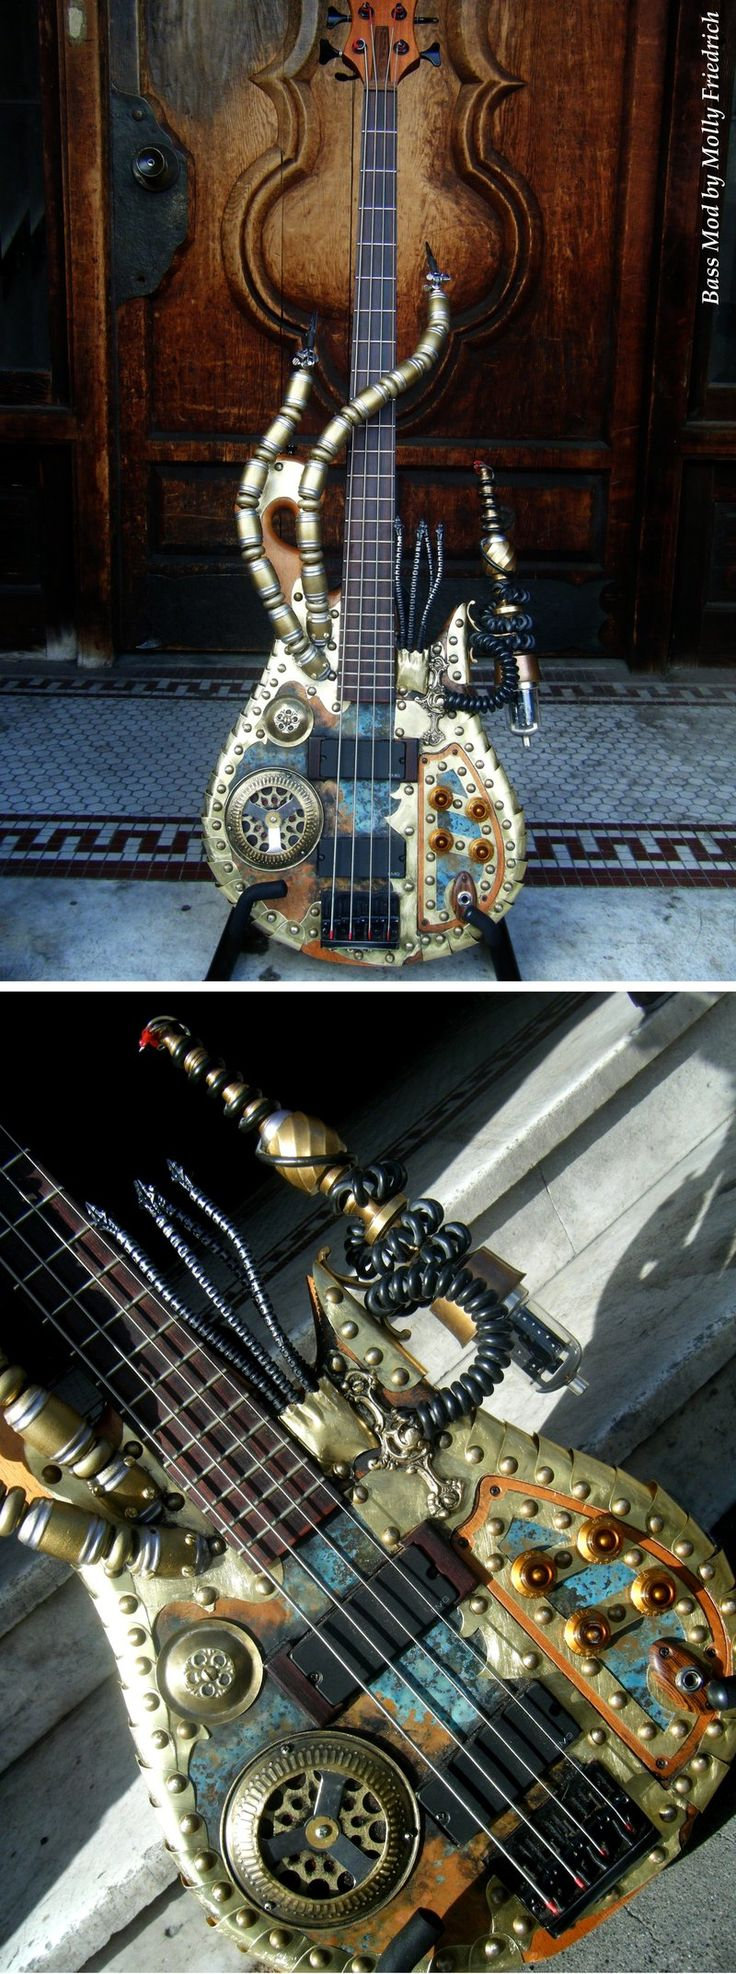 I love playing my bass guitar. Now this would be a cool bass to have :)